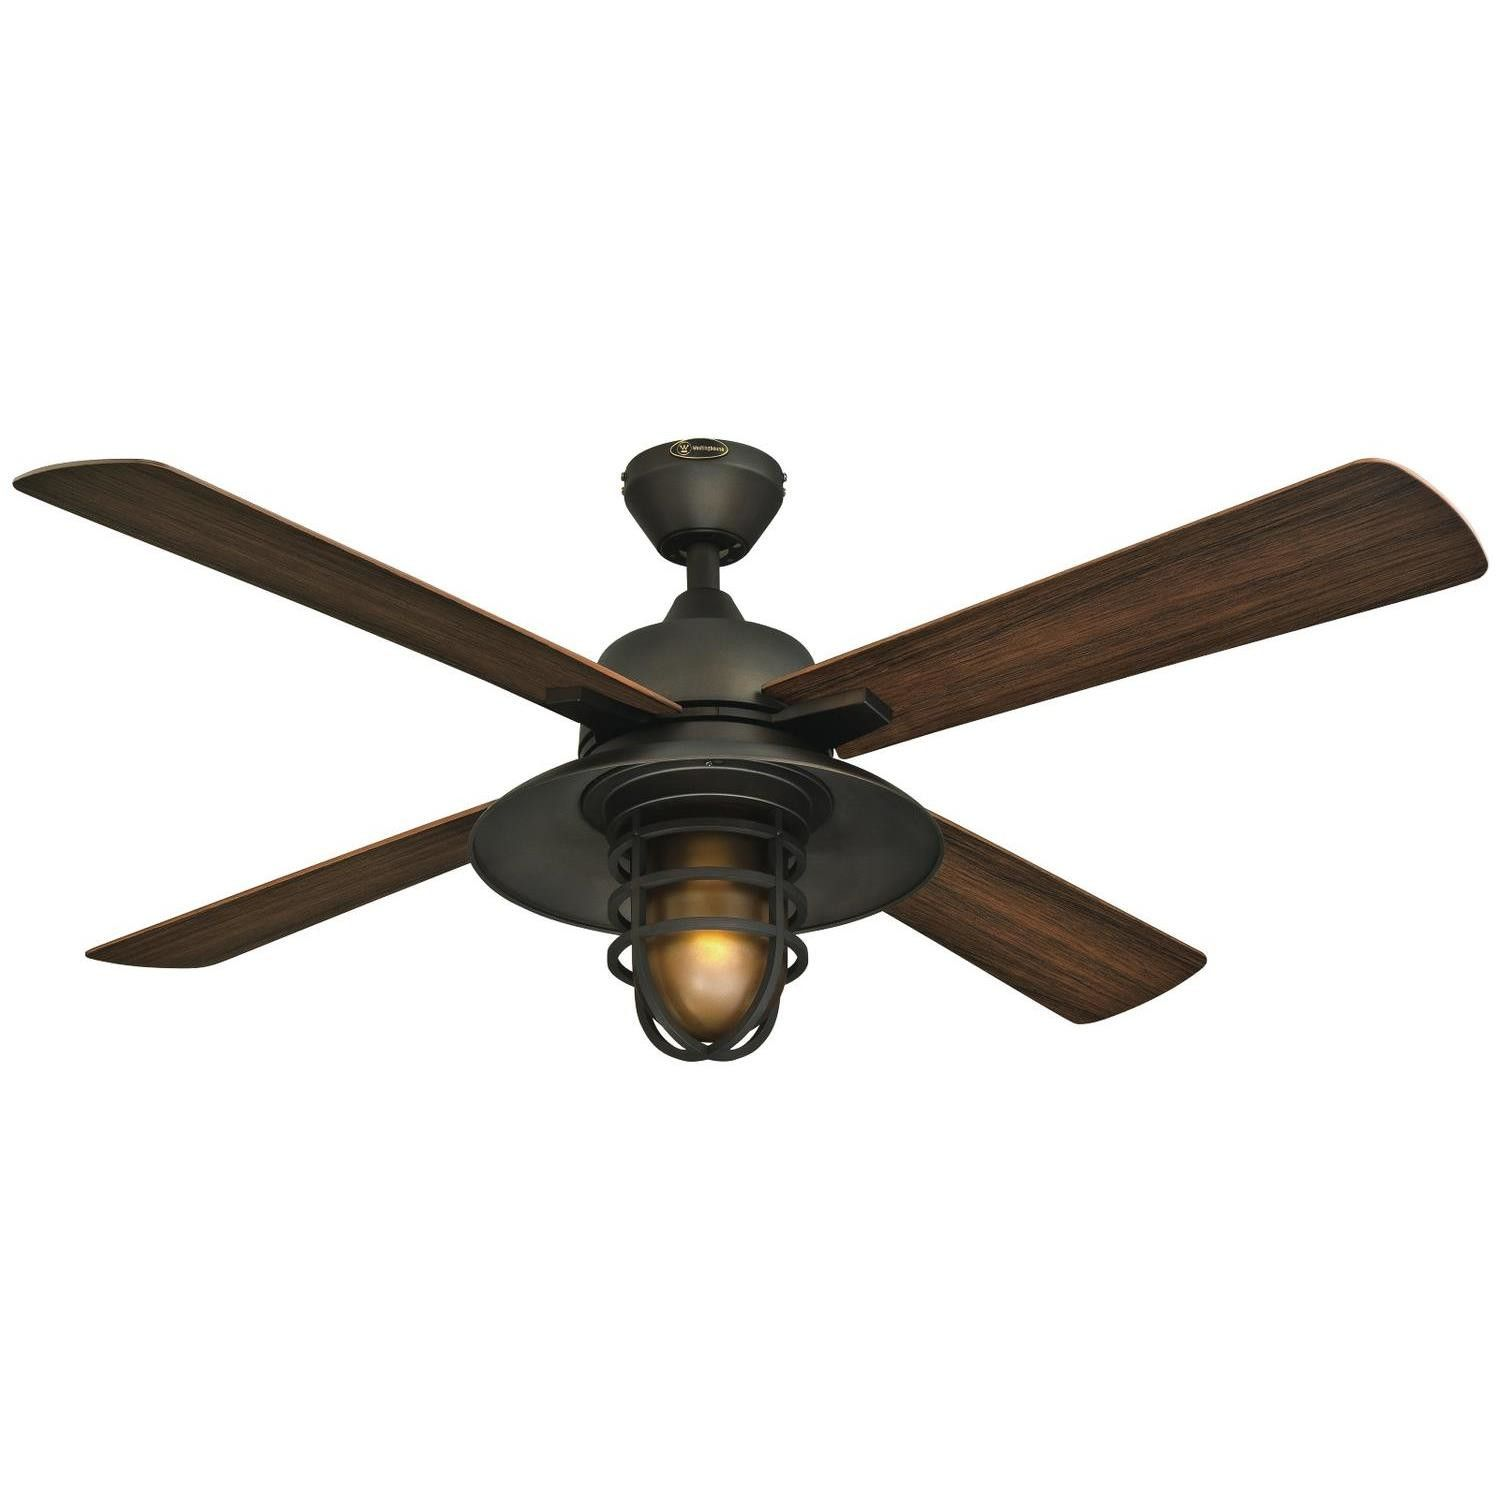 Shop Wayfair for Outdoor Ceiling Fans to match every style and